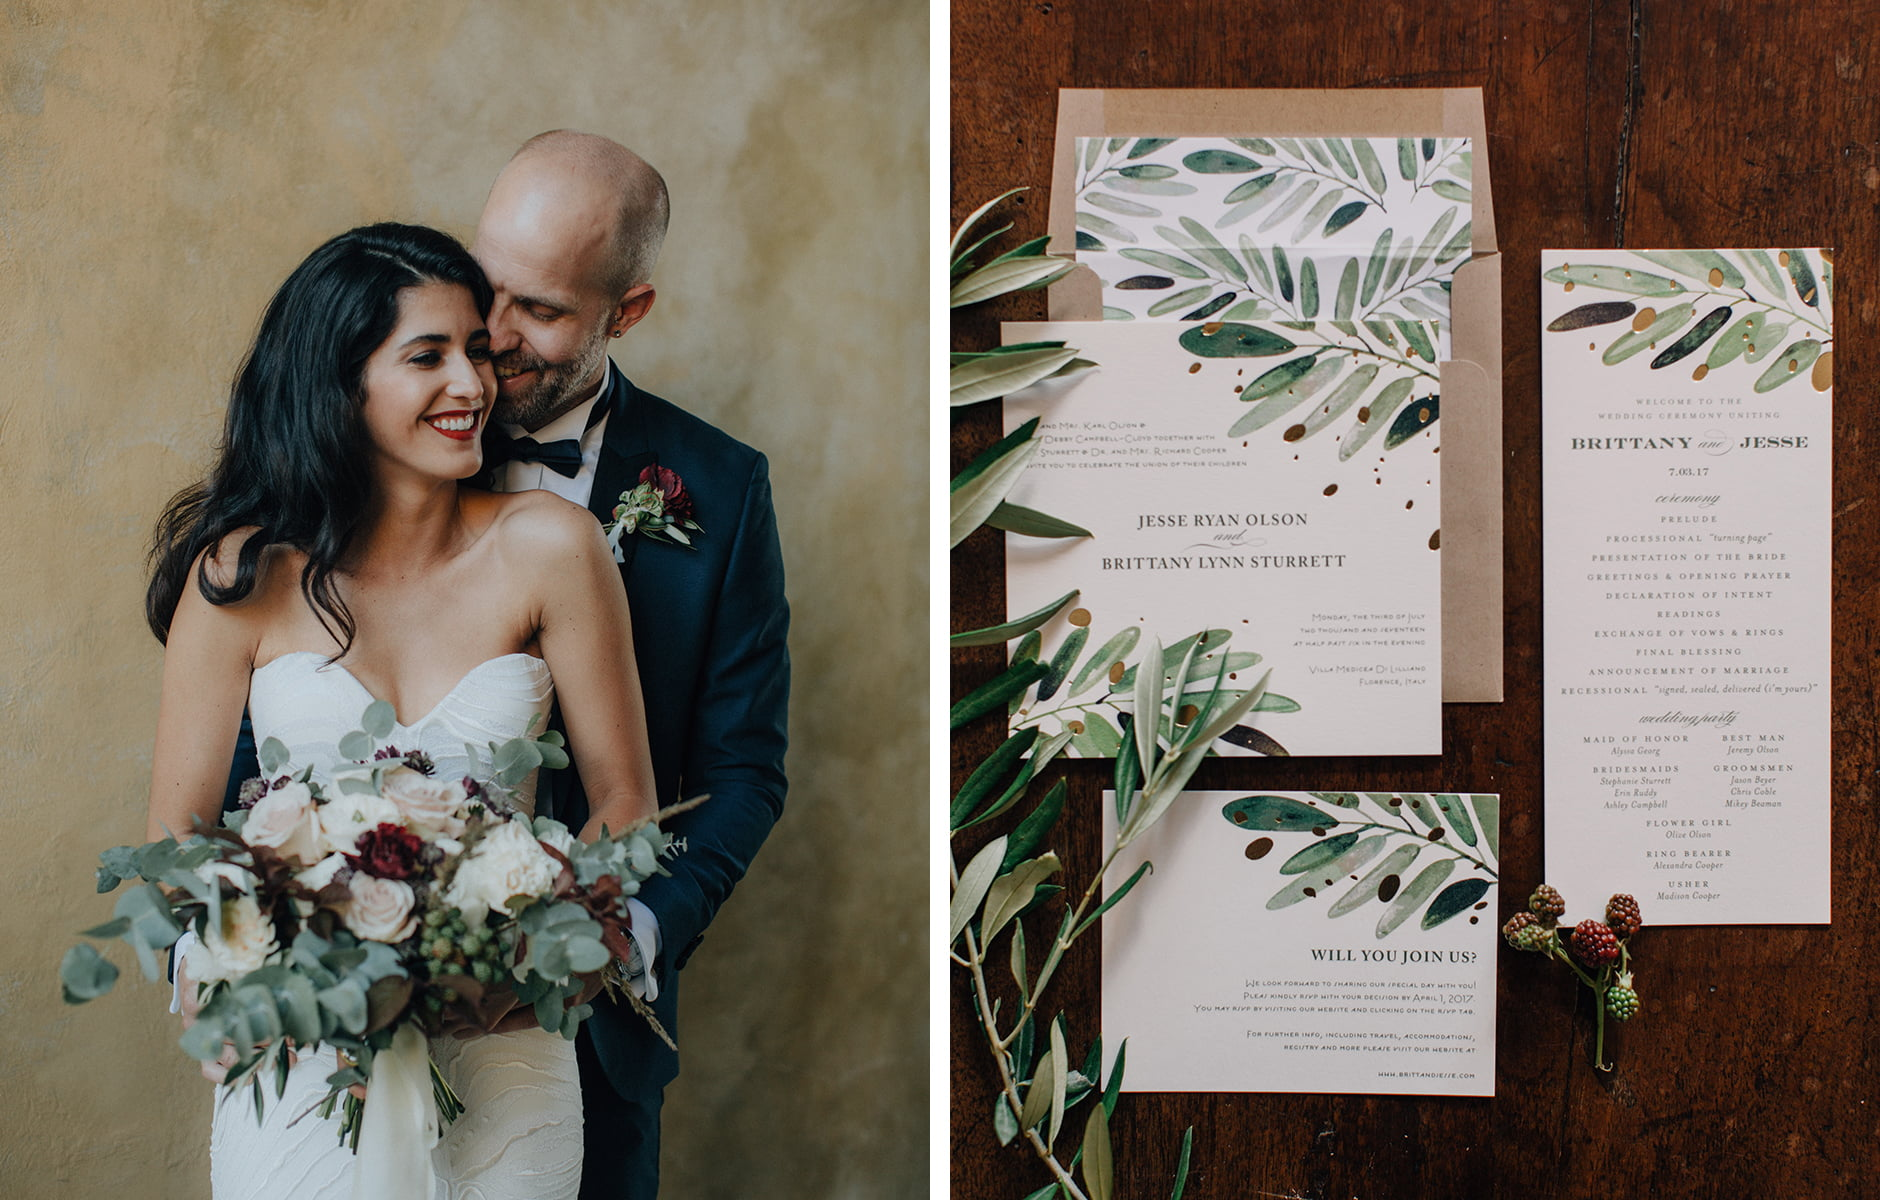 Minted Real Weddings: Brittany and Jesse - 1